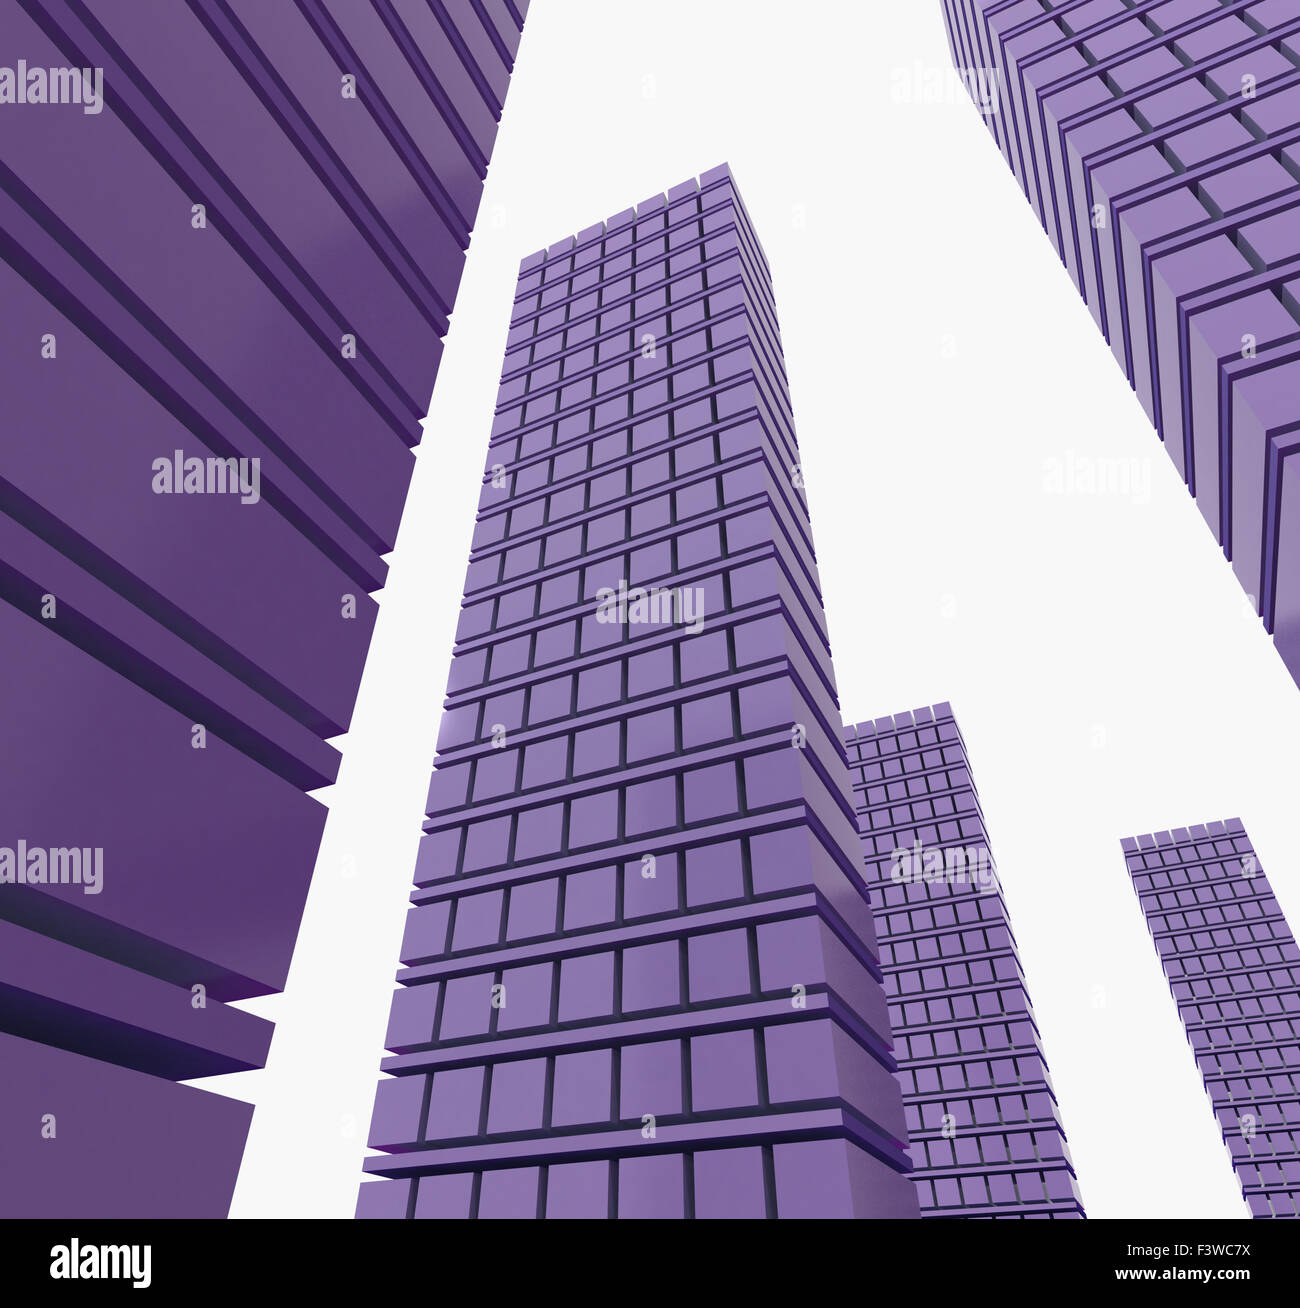 Three-dimensional city - Stock Image